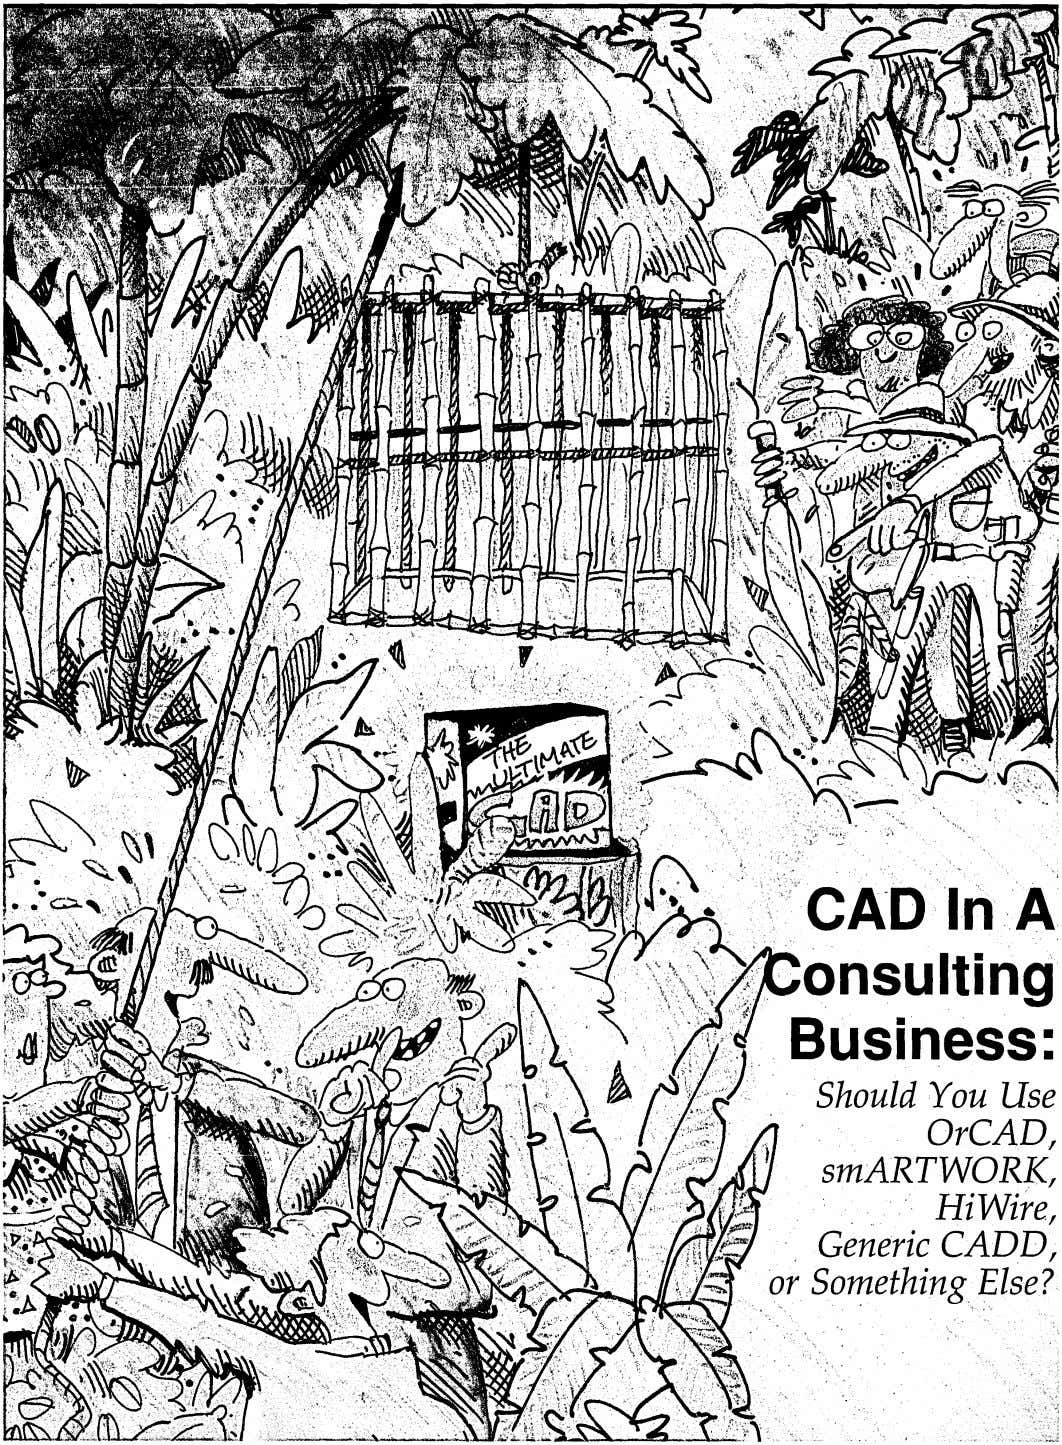 CAD In A onsulting Business: ShouldYou Use OrCAD, smARTWORK, , Hi Wire, Generic CADD, or